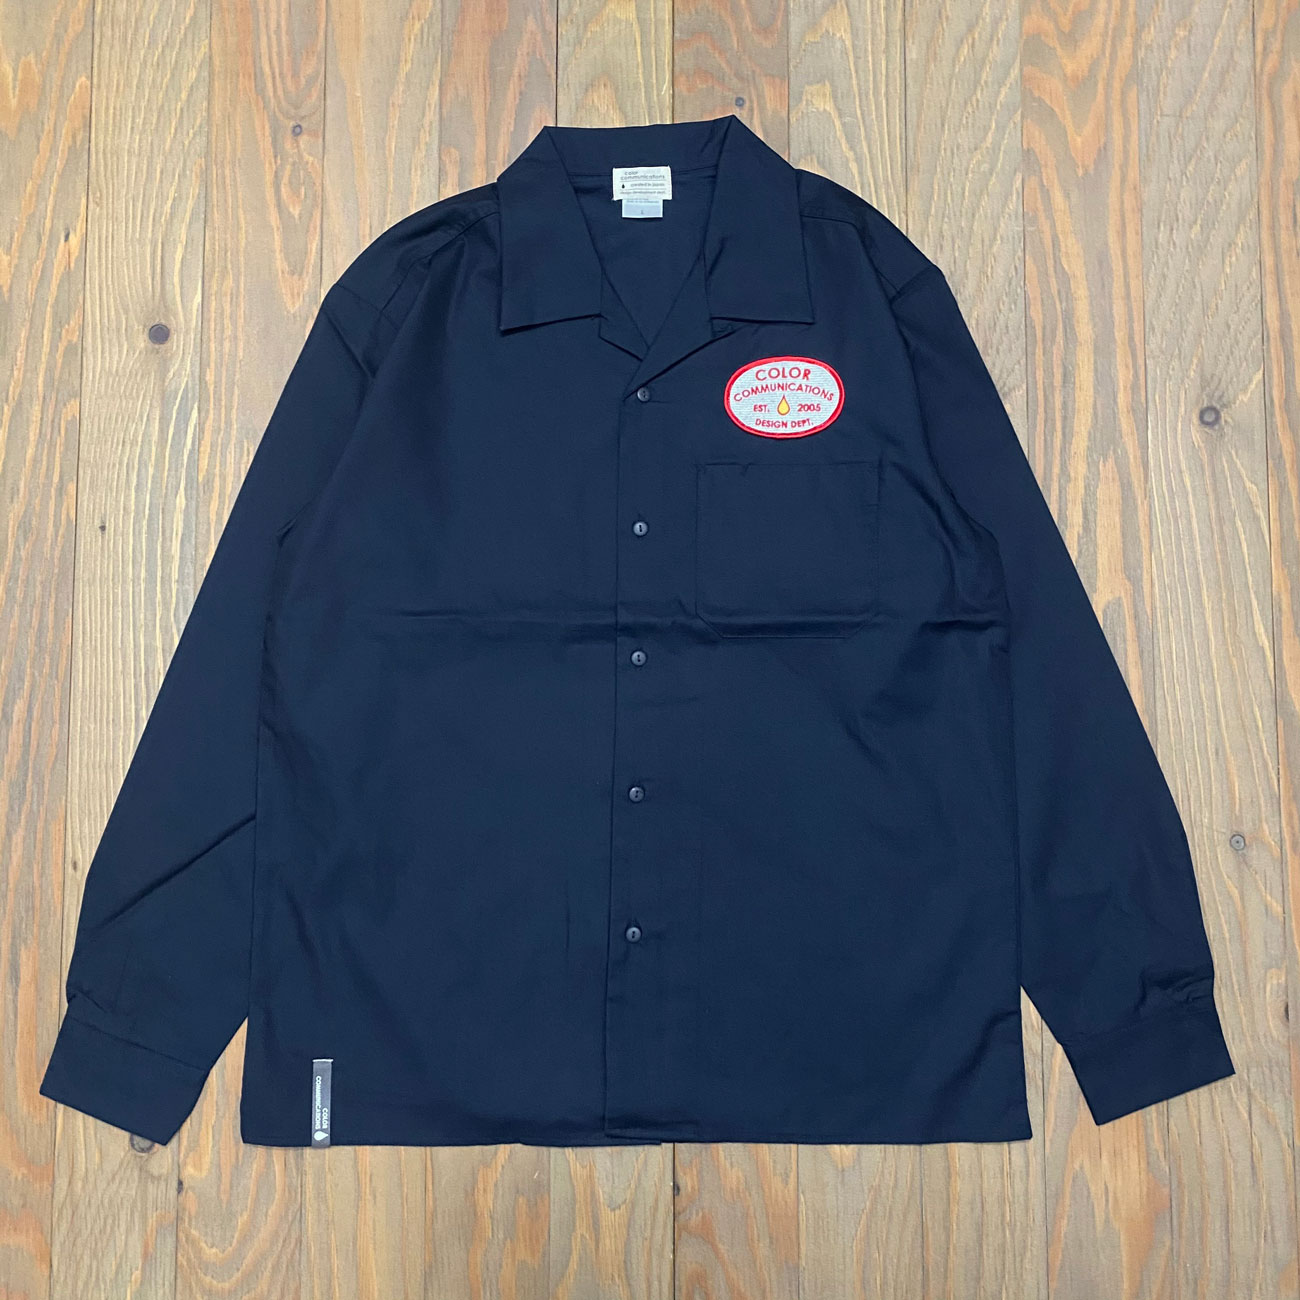 COLOR COMMUNICATIONS STATION PATCH WORK SHIRTS